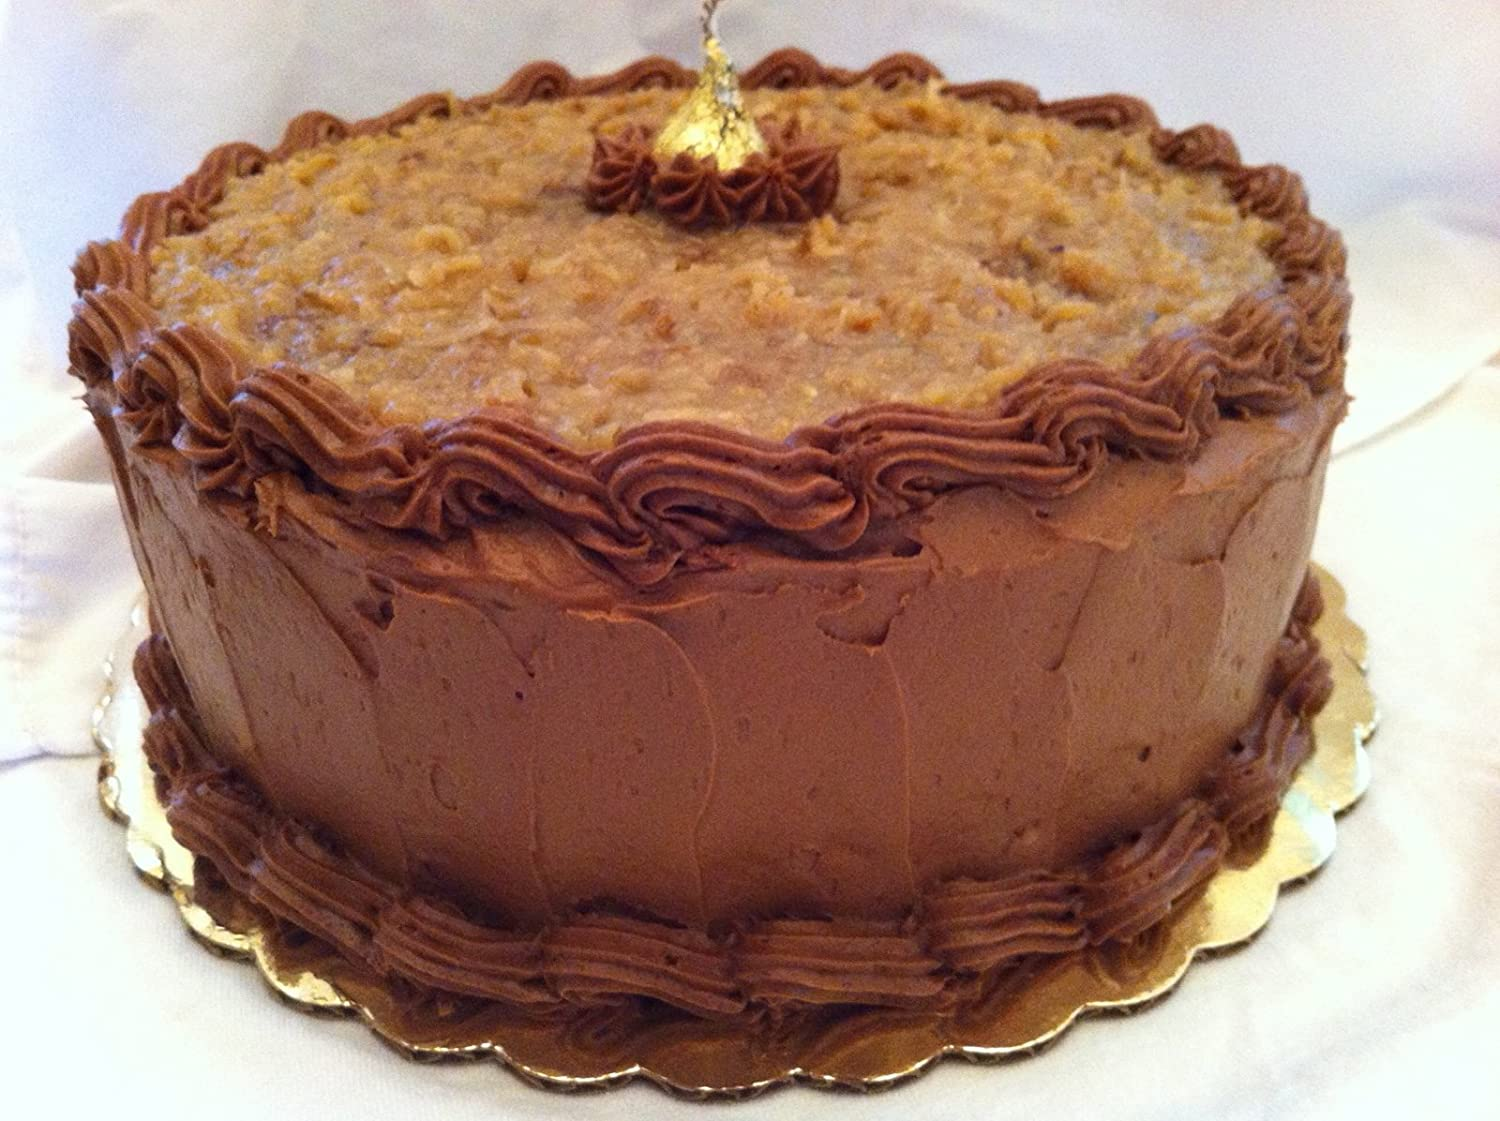 Gourmet German Chocolate Cake - From Scratch: Amazon.com: Grocery ...